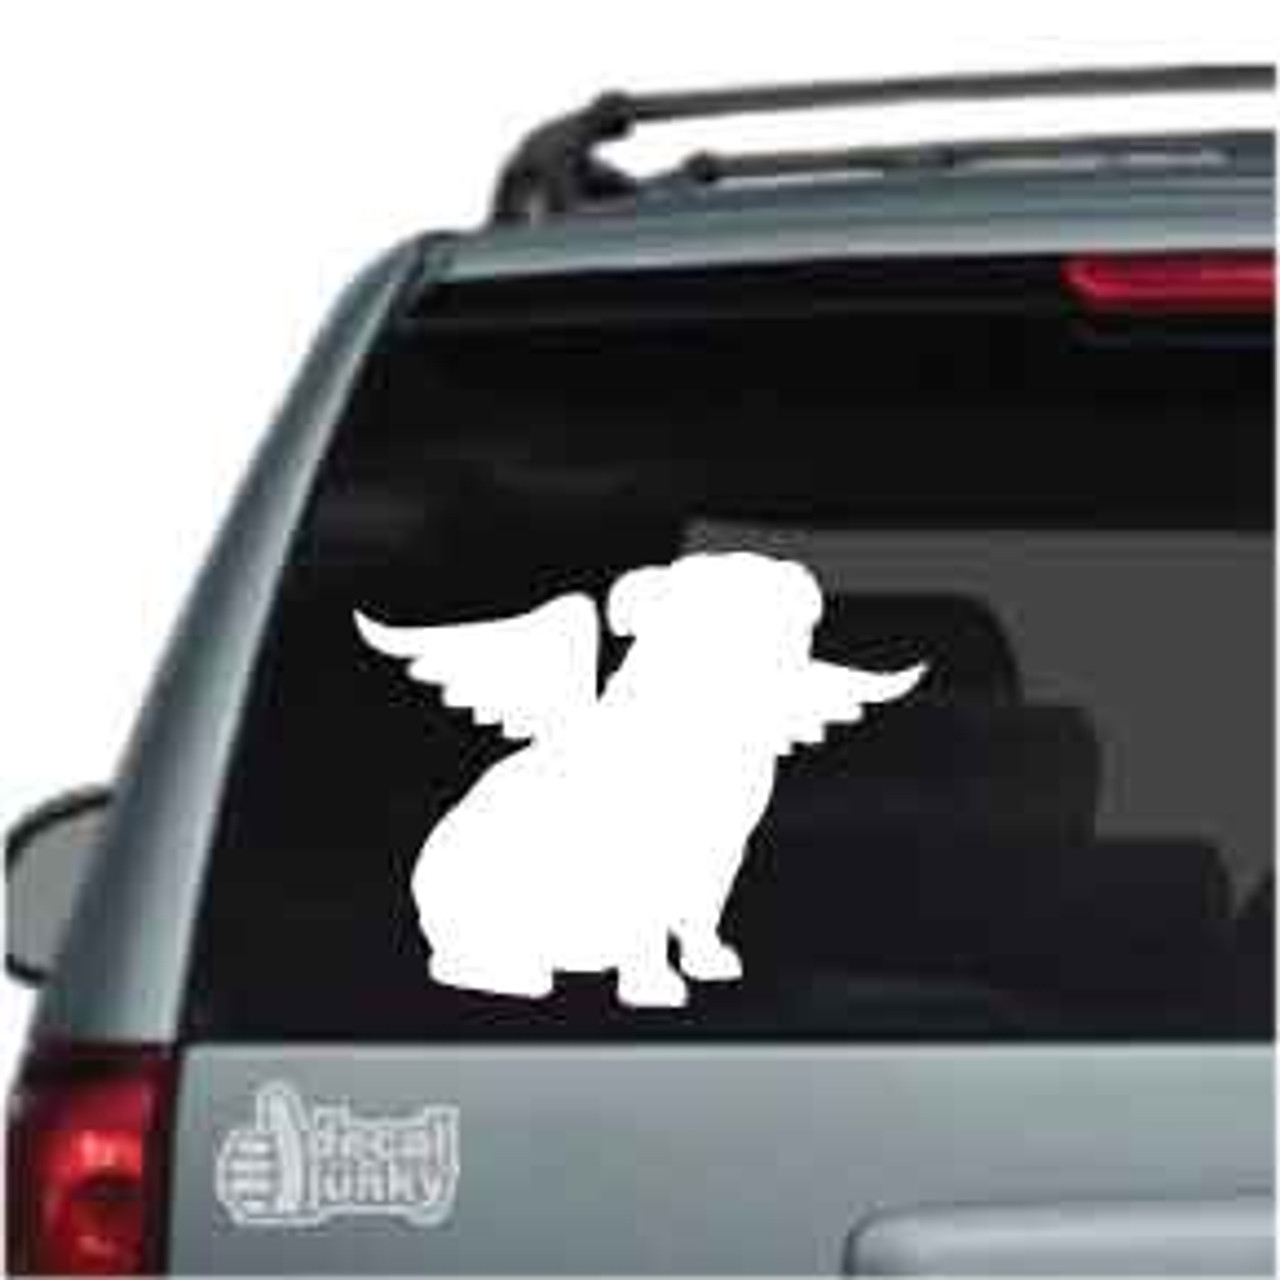 Bulldog Silhouette Sitting Angel Car Decal